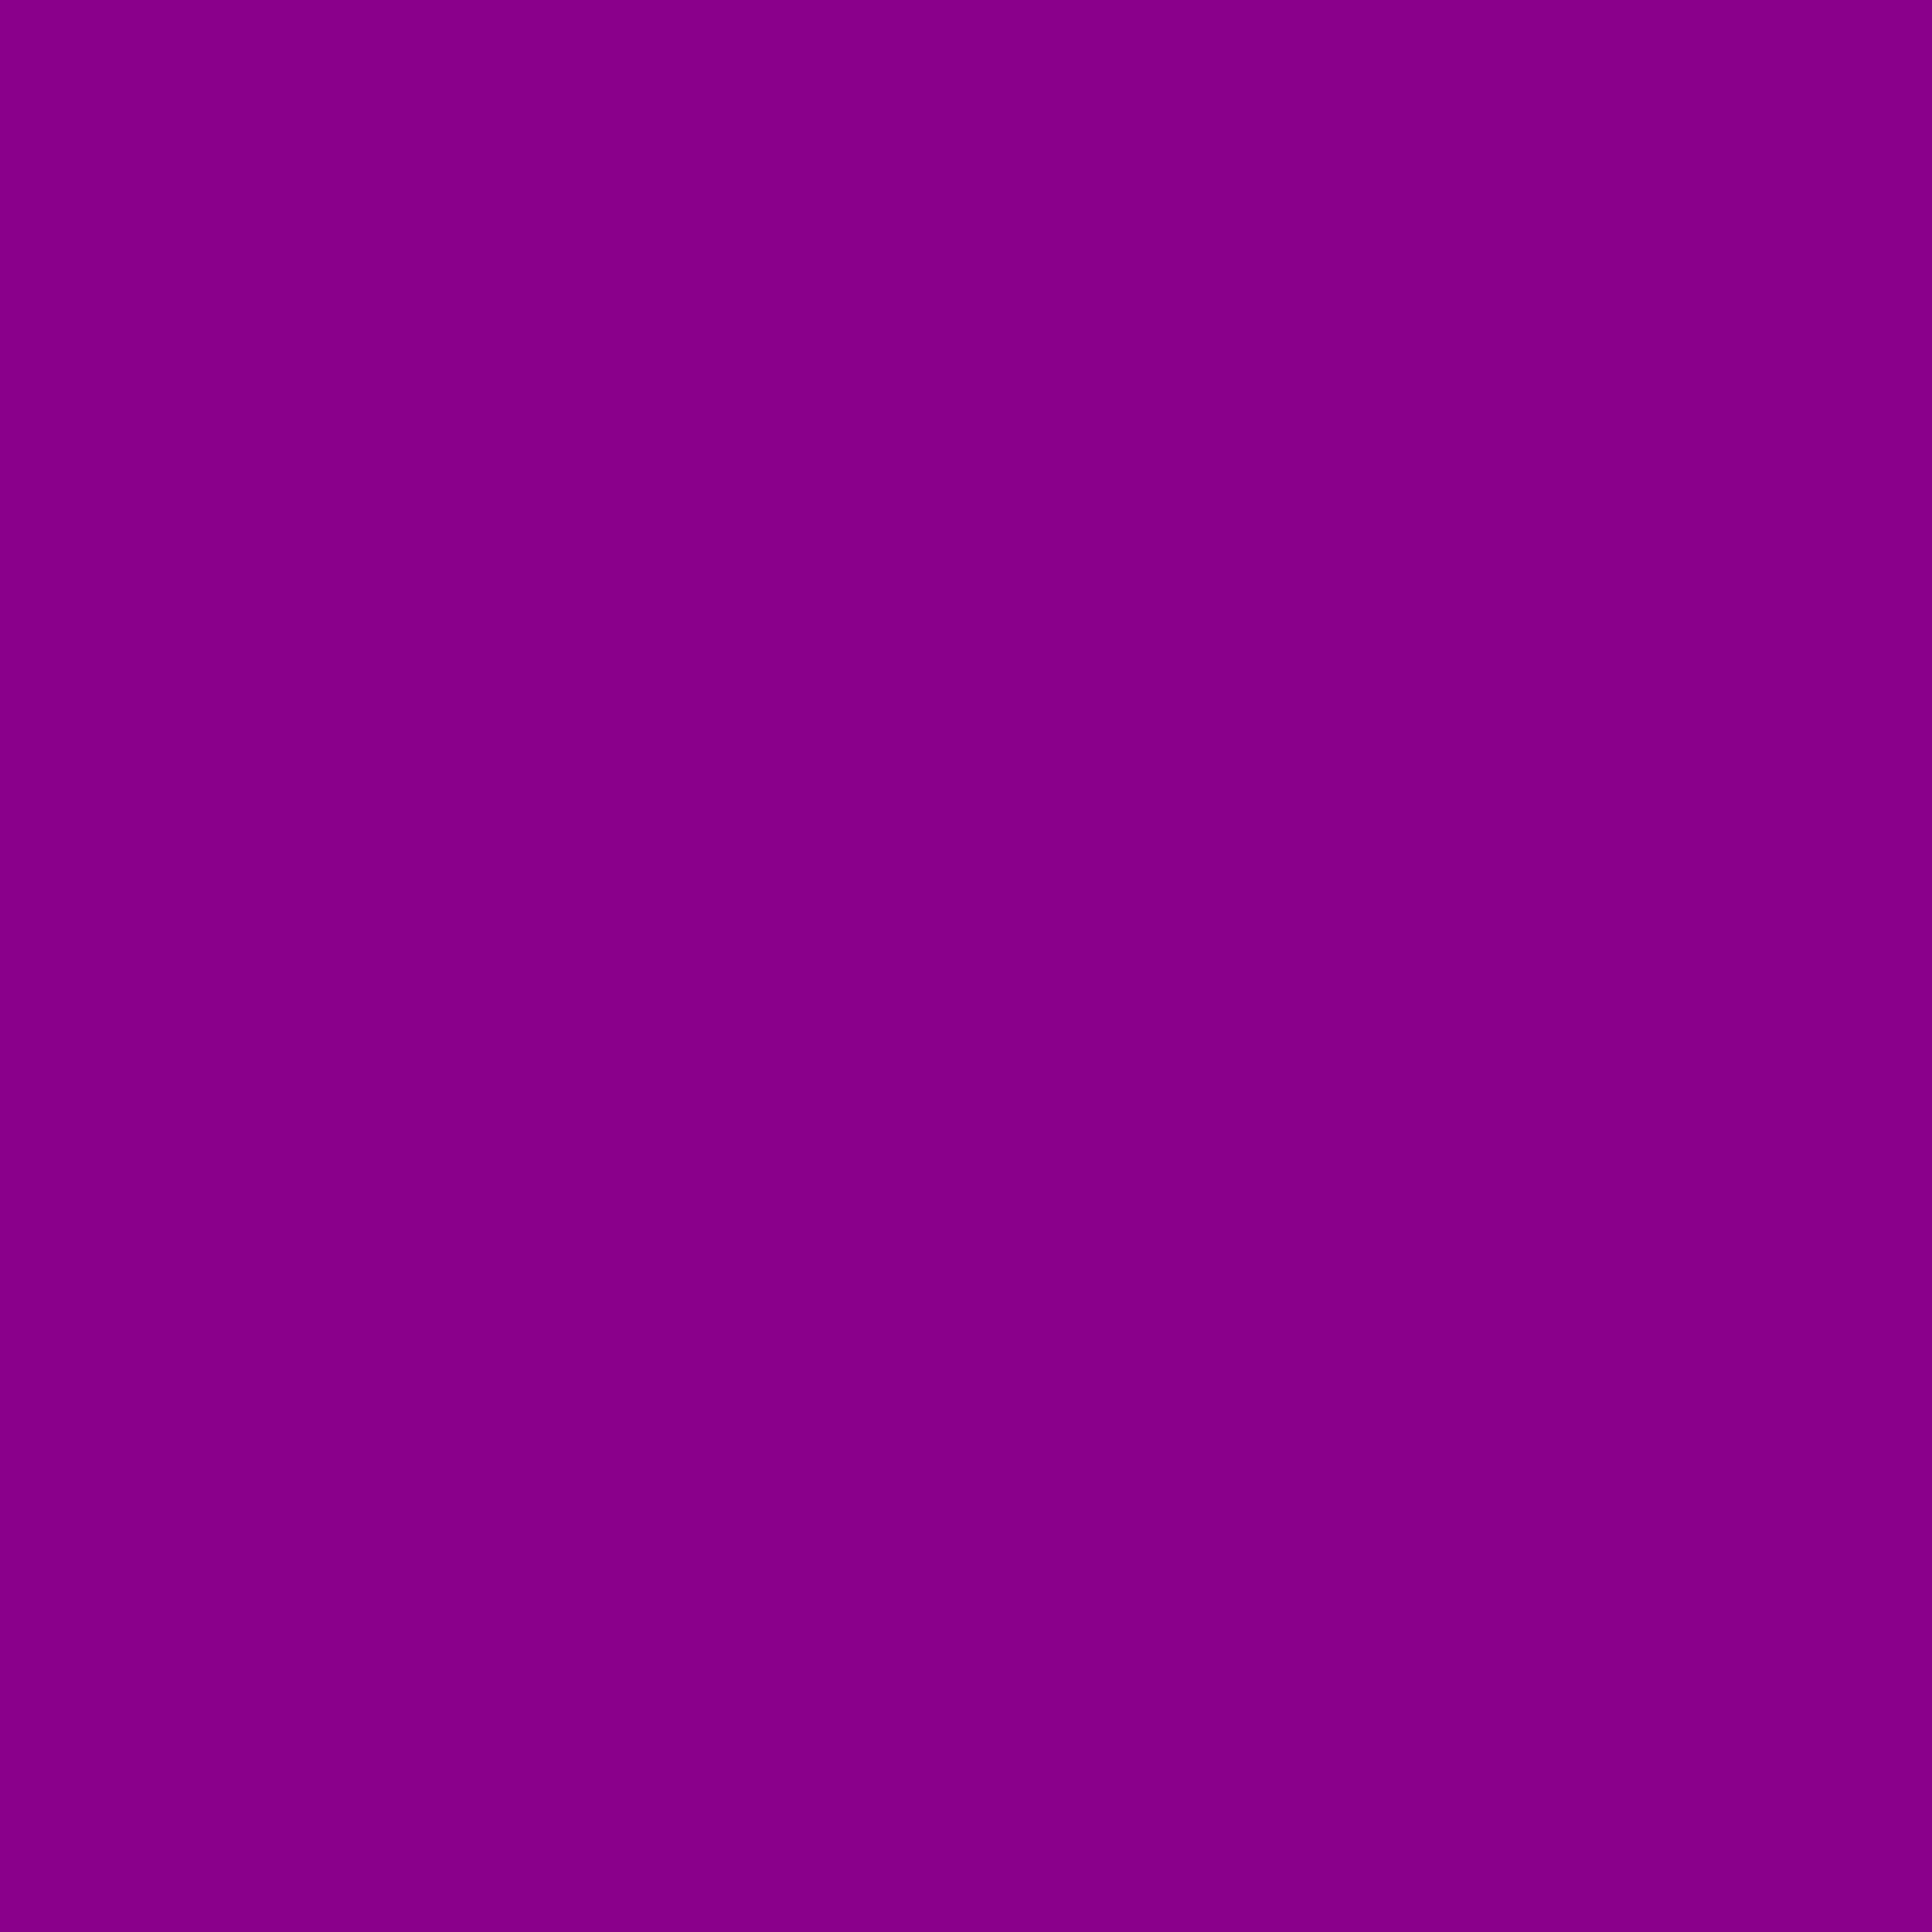 2048x2048 Dark Magenta Solid Color Background